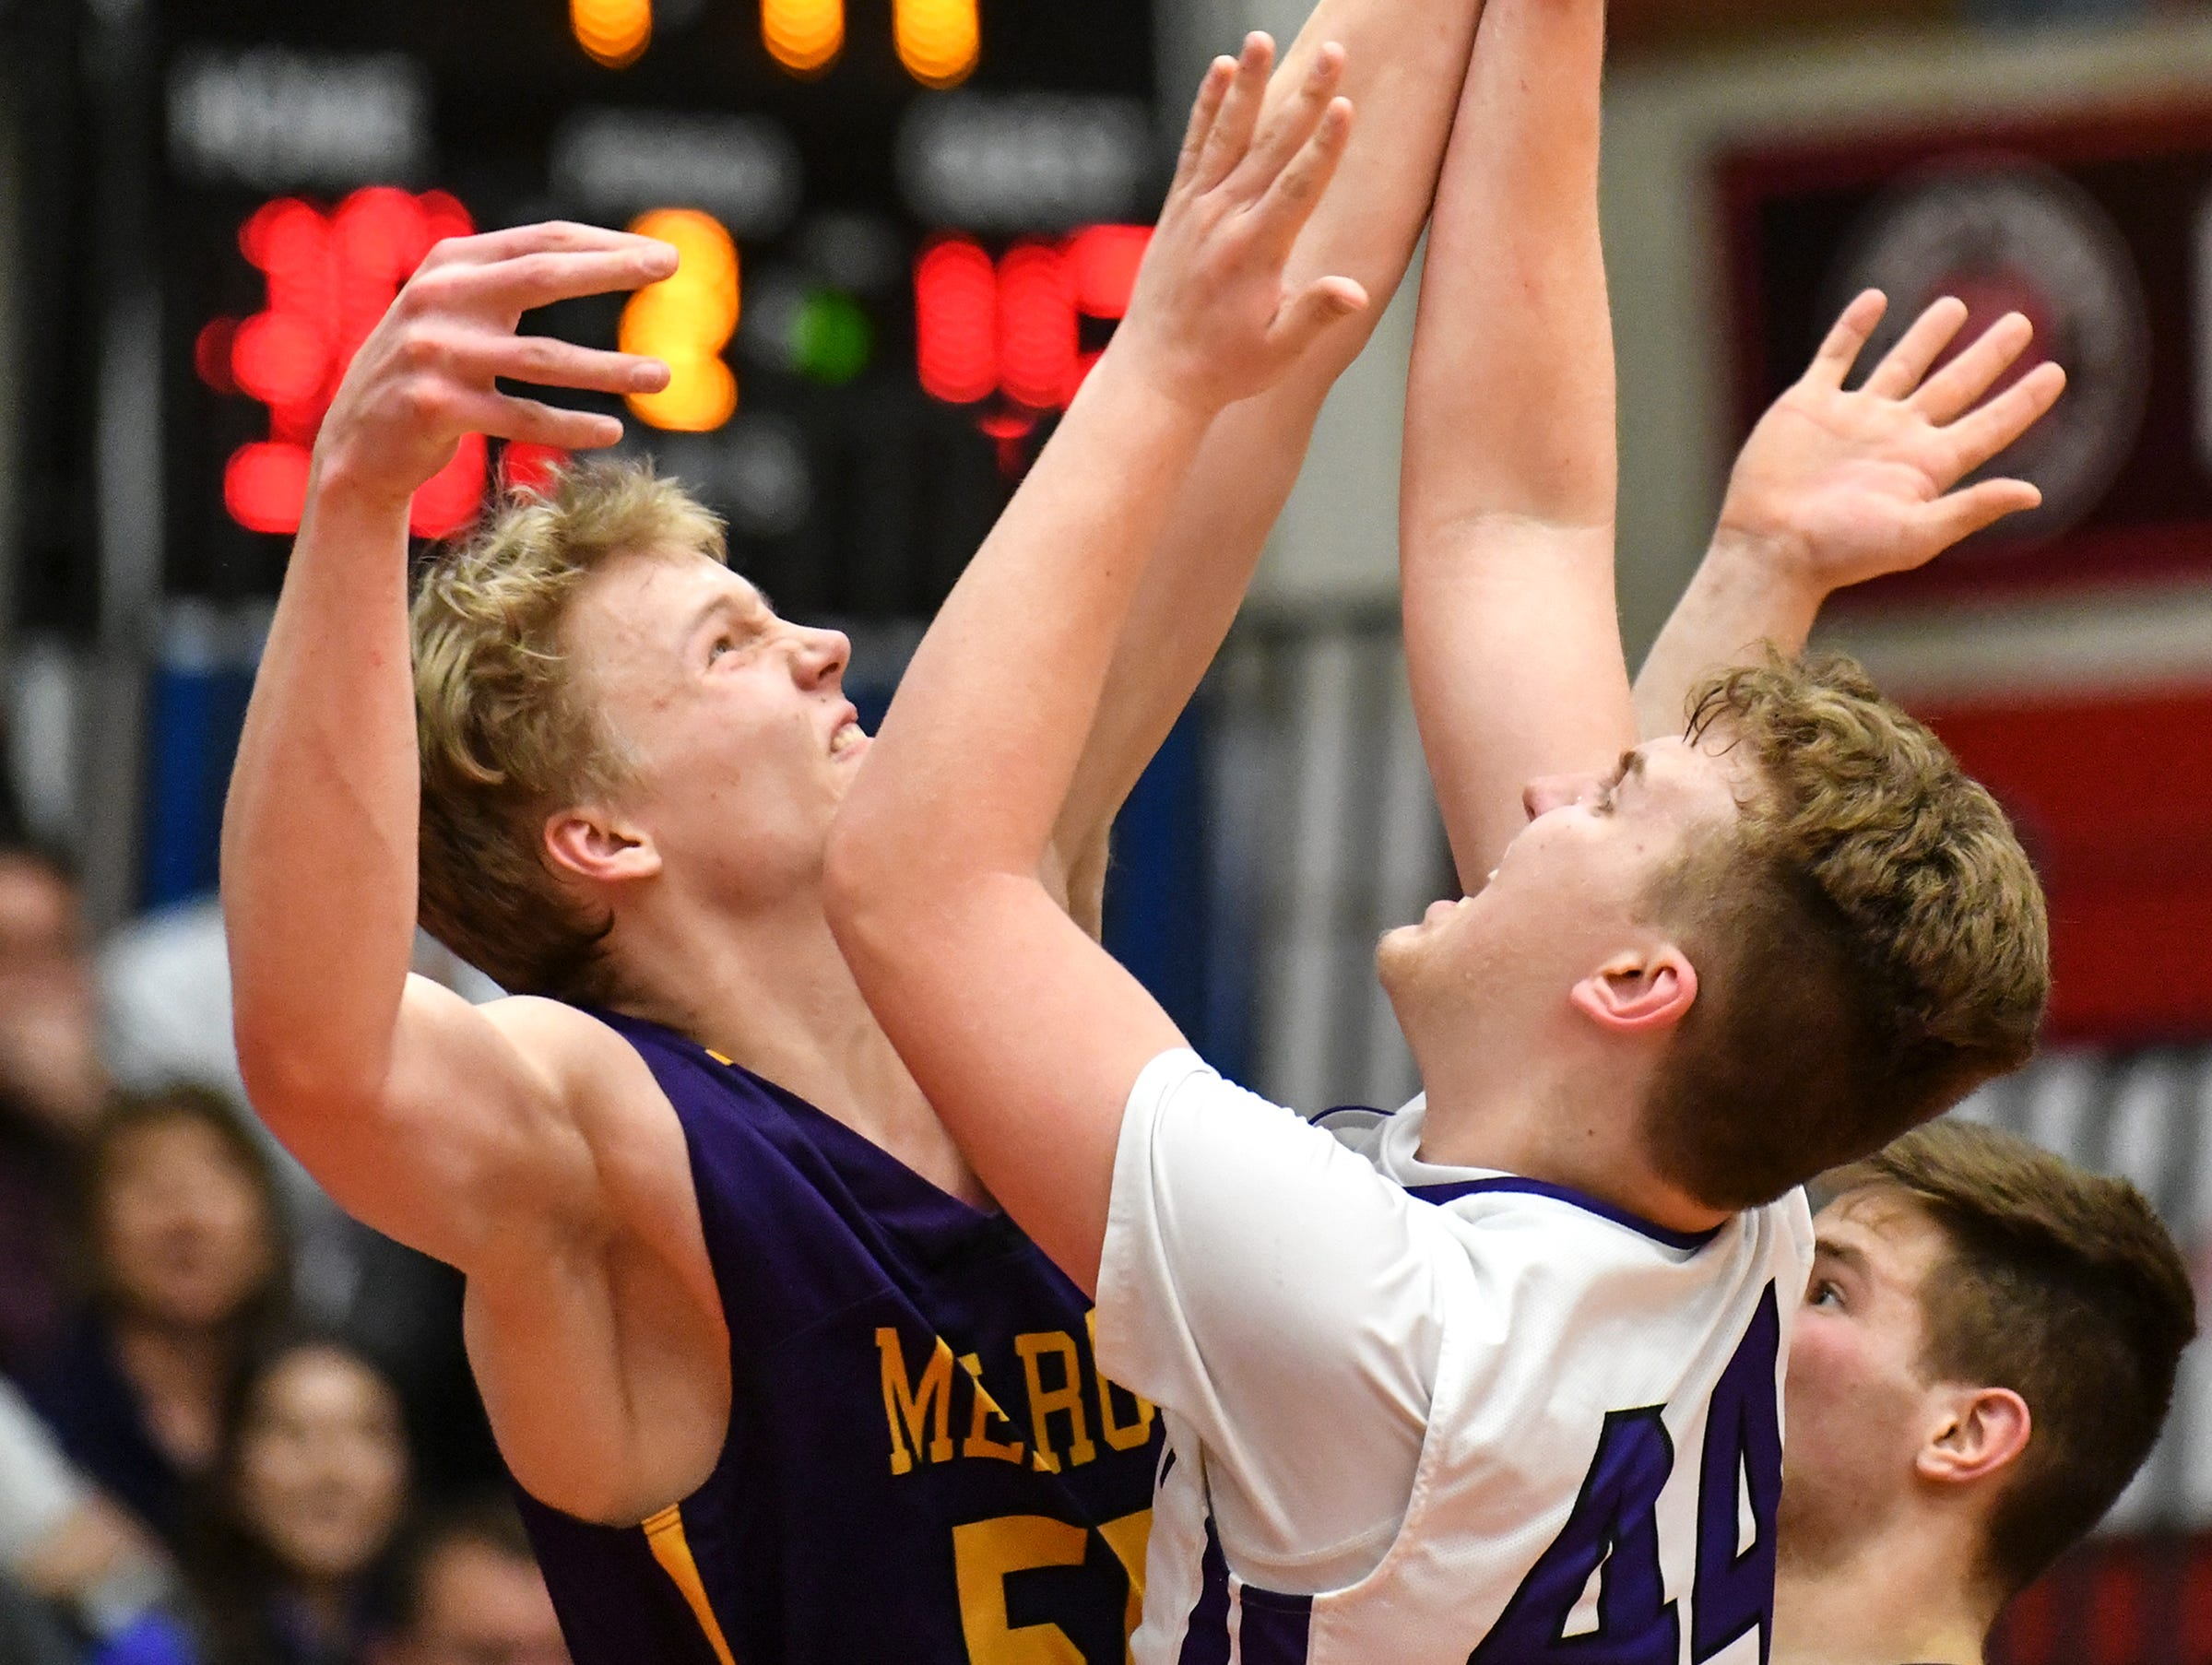 Daniel Klassen of Melrose tries to block a shot by Albany's Andrew Hahn during the second half of the Friday, March 15, Section 6-2A championship game at Halenbeck Hall in St. Cloud.